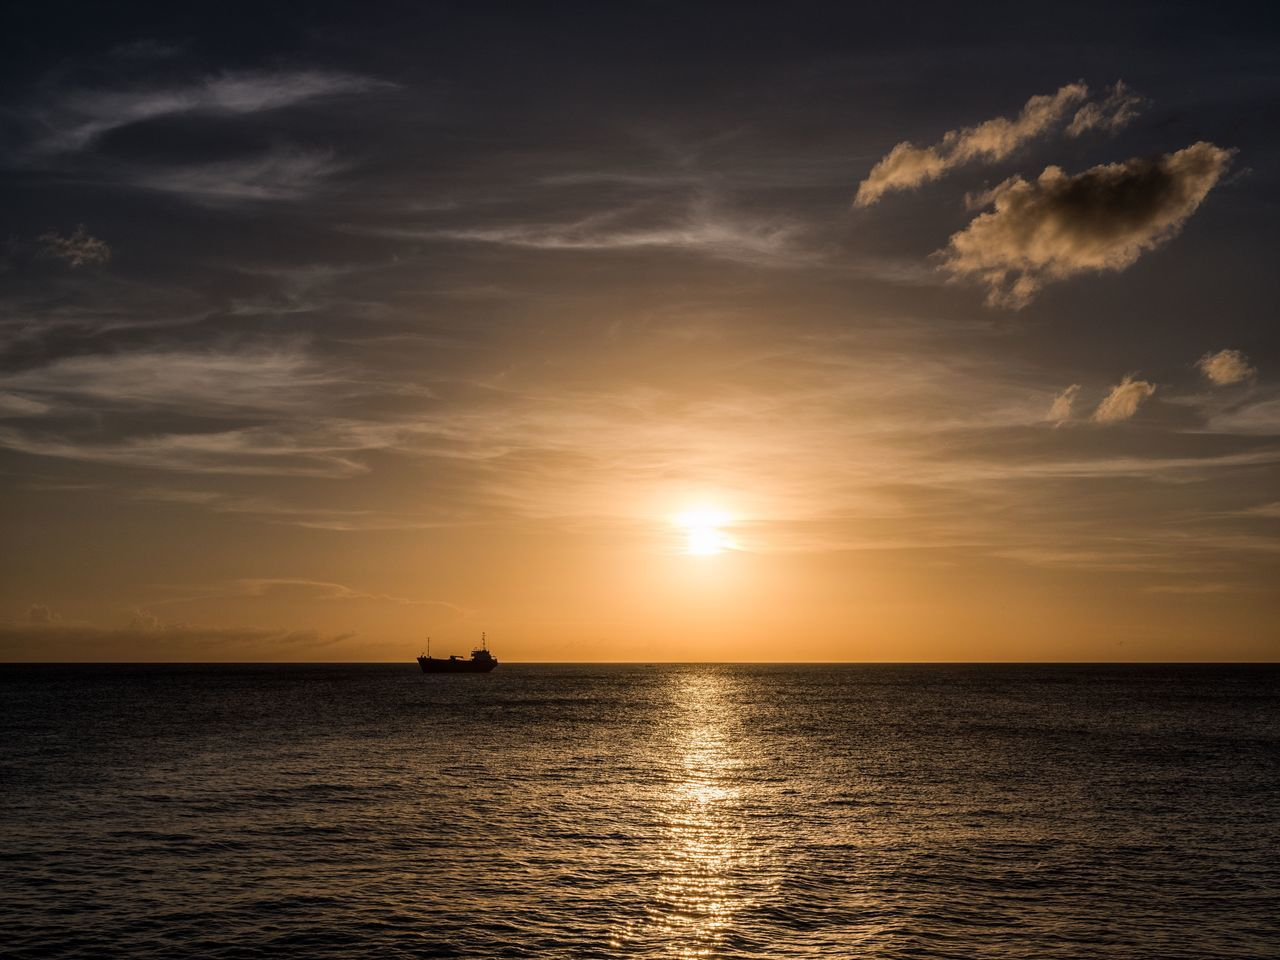 Waiting for my 🚢 to come in... Sunset Sea Beauty In Nature Scenics Water Sky Silhouette Tranquil Scene Sun Horizon Over Water Waterfront Cloud - Sky Rippled No People Outdoors Sunlight Nautical Vessel Photographyisthemuse Bimini The Bahamas Travel Photography